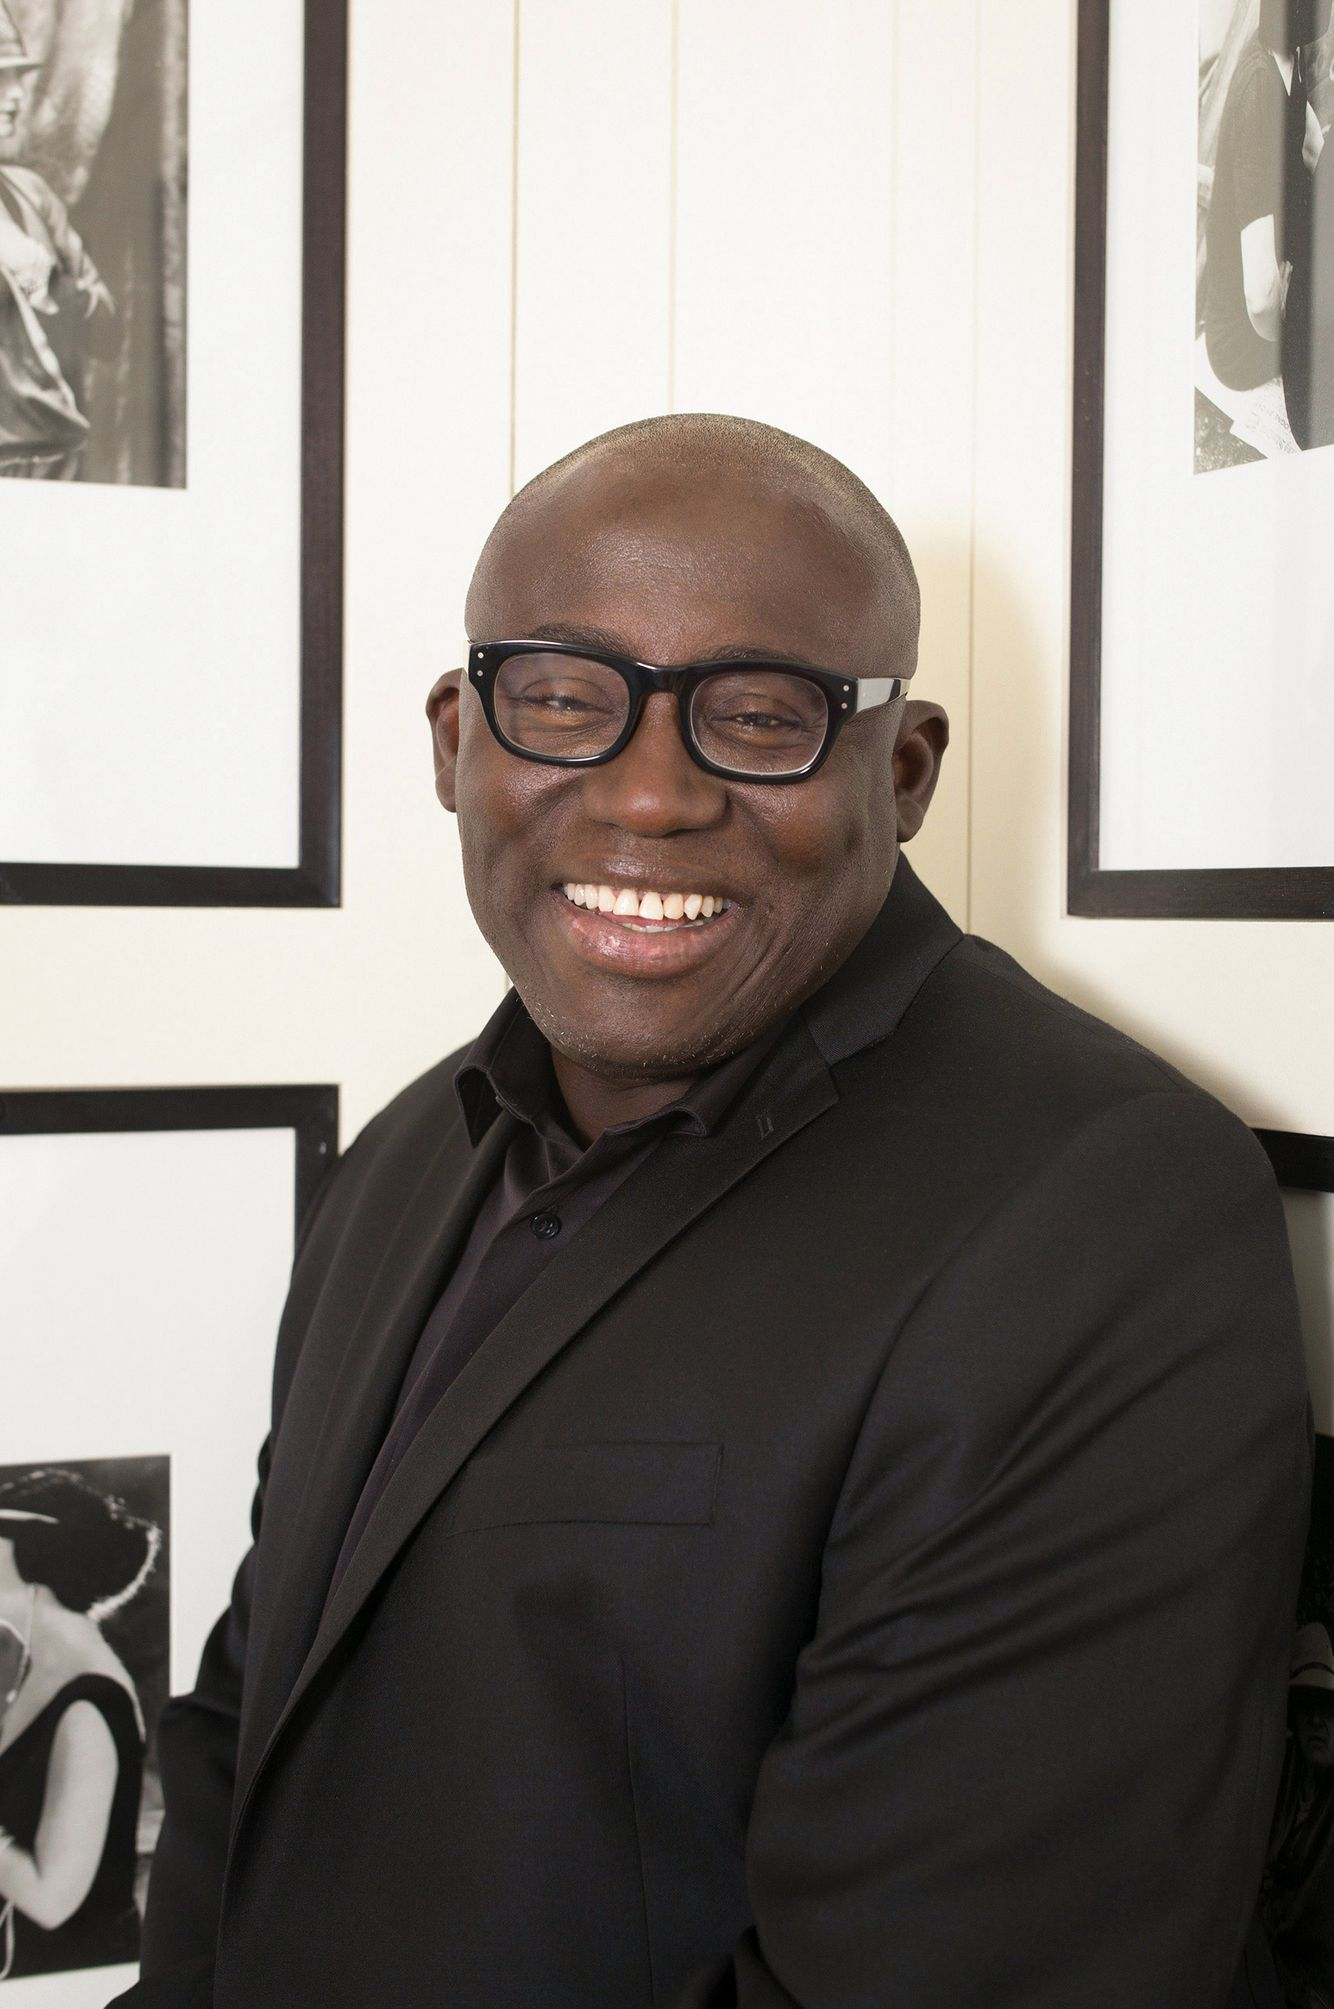 Edward Enninful Editor of British Vogue